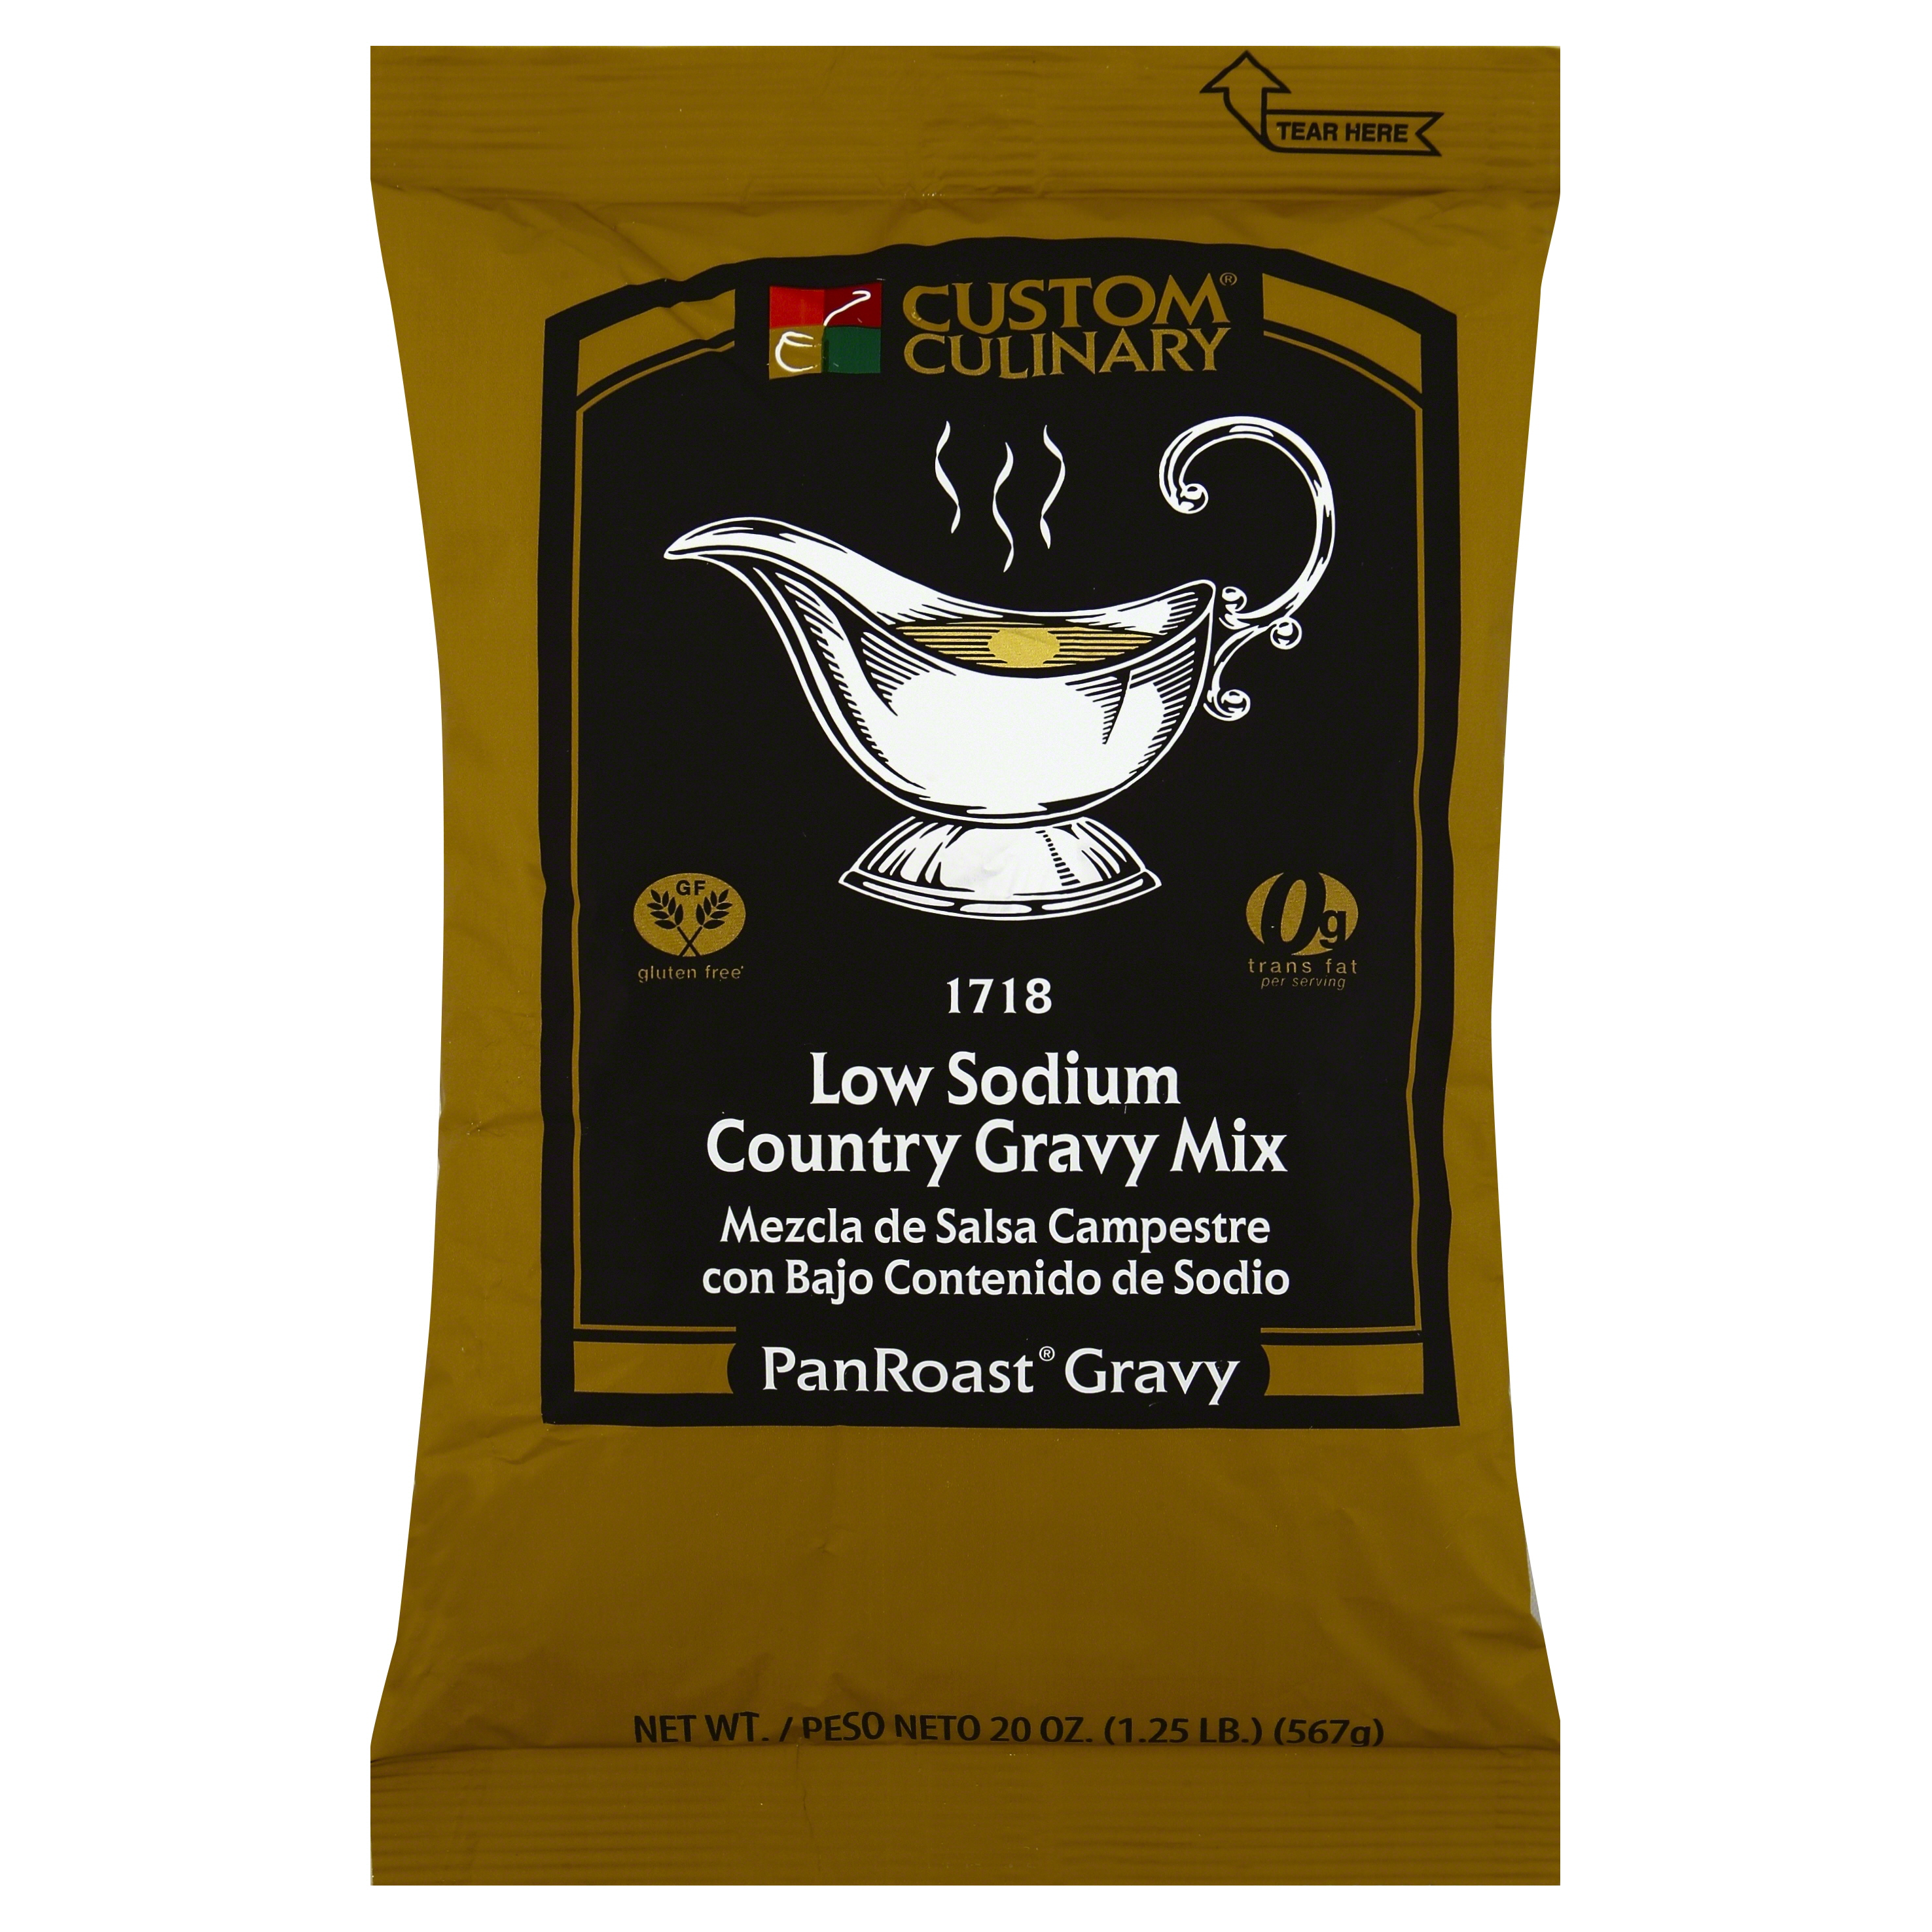 1718 - PanRoast Low Sodium Country Gravy Mix